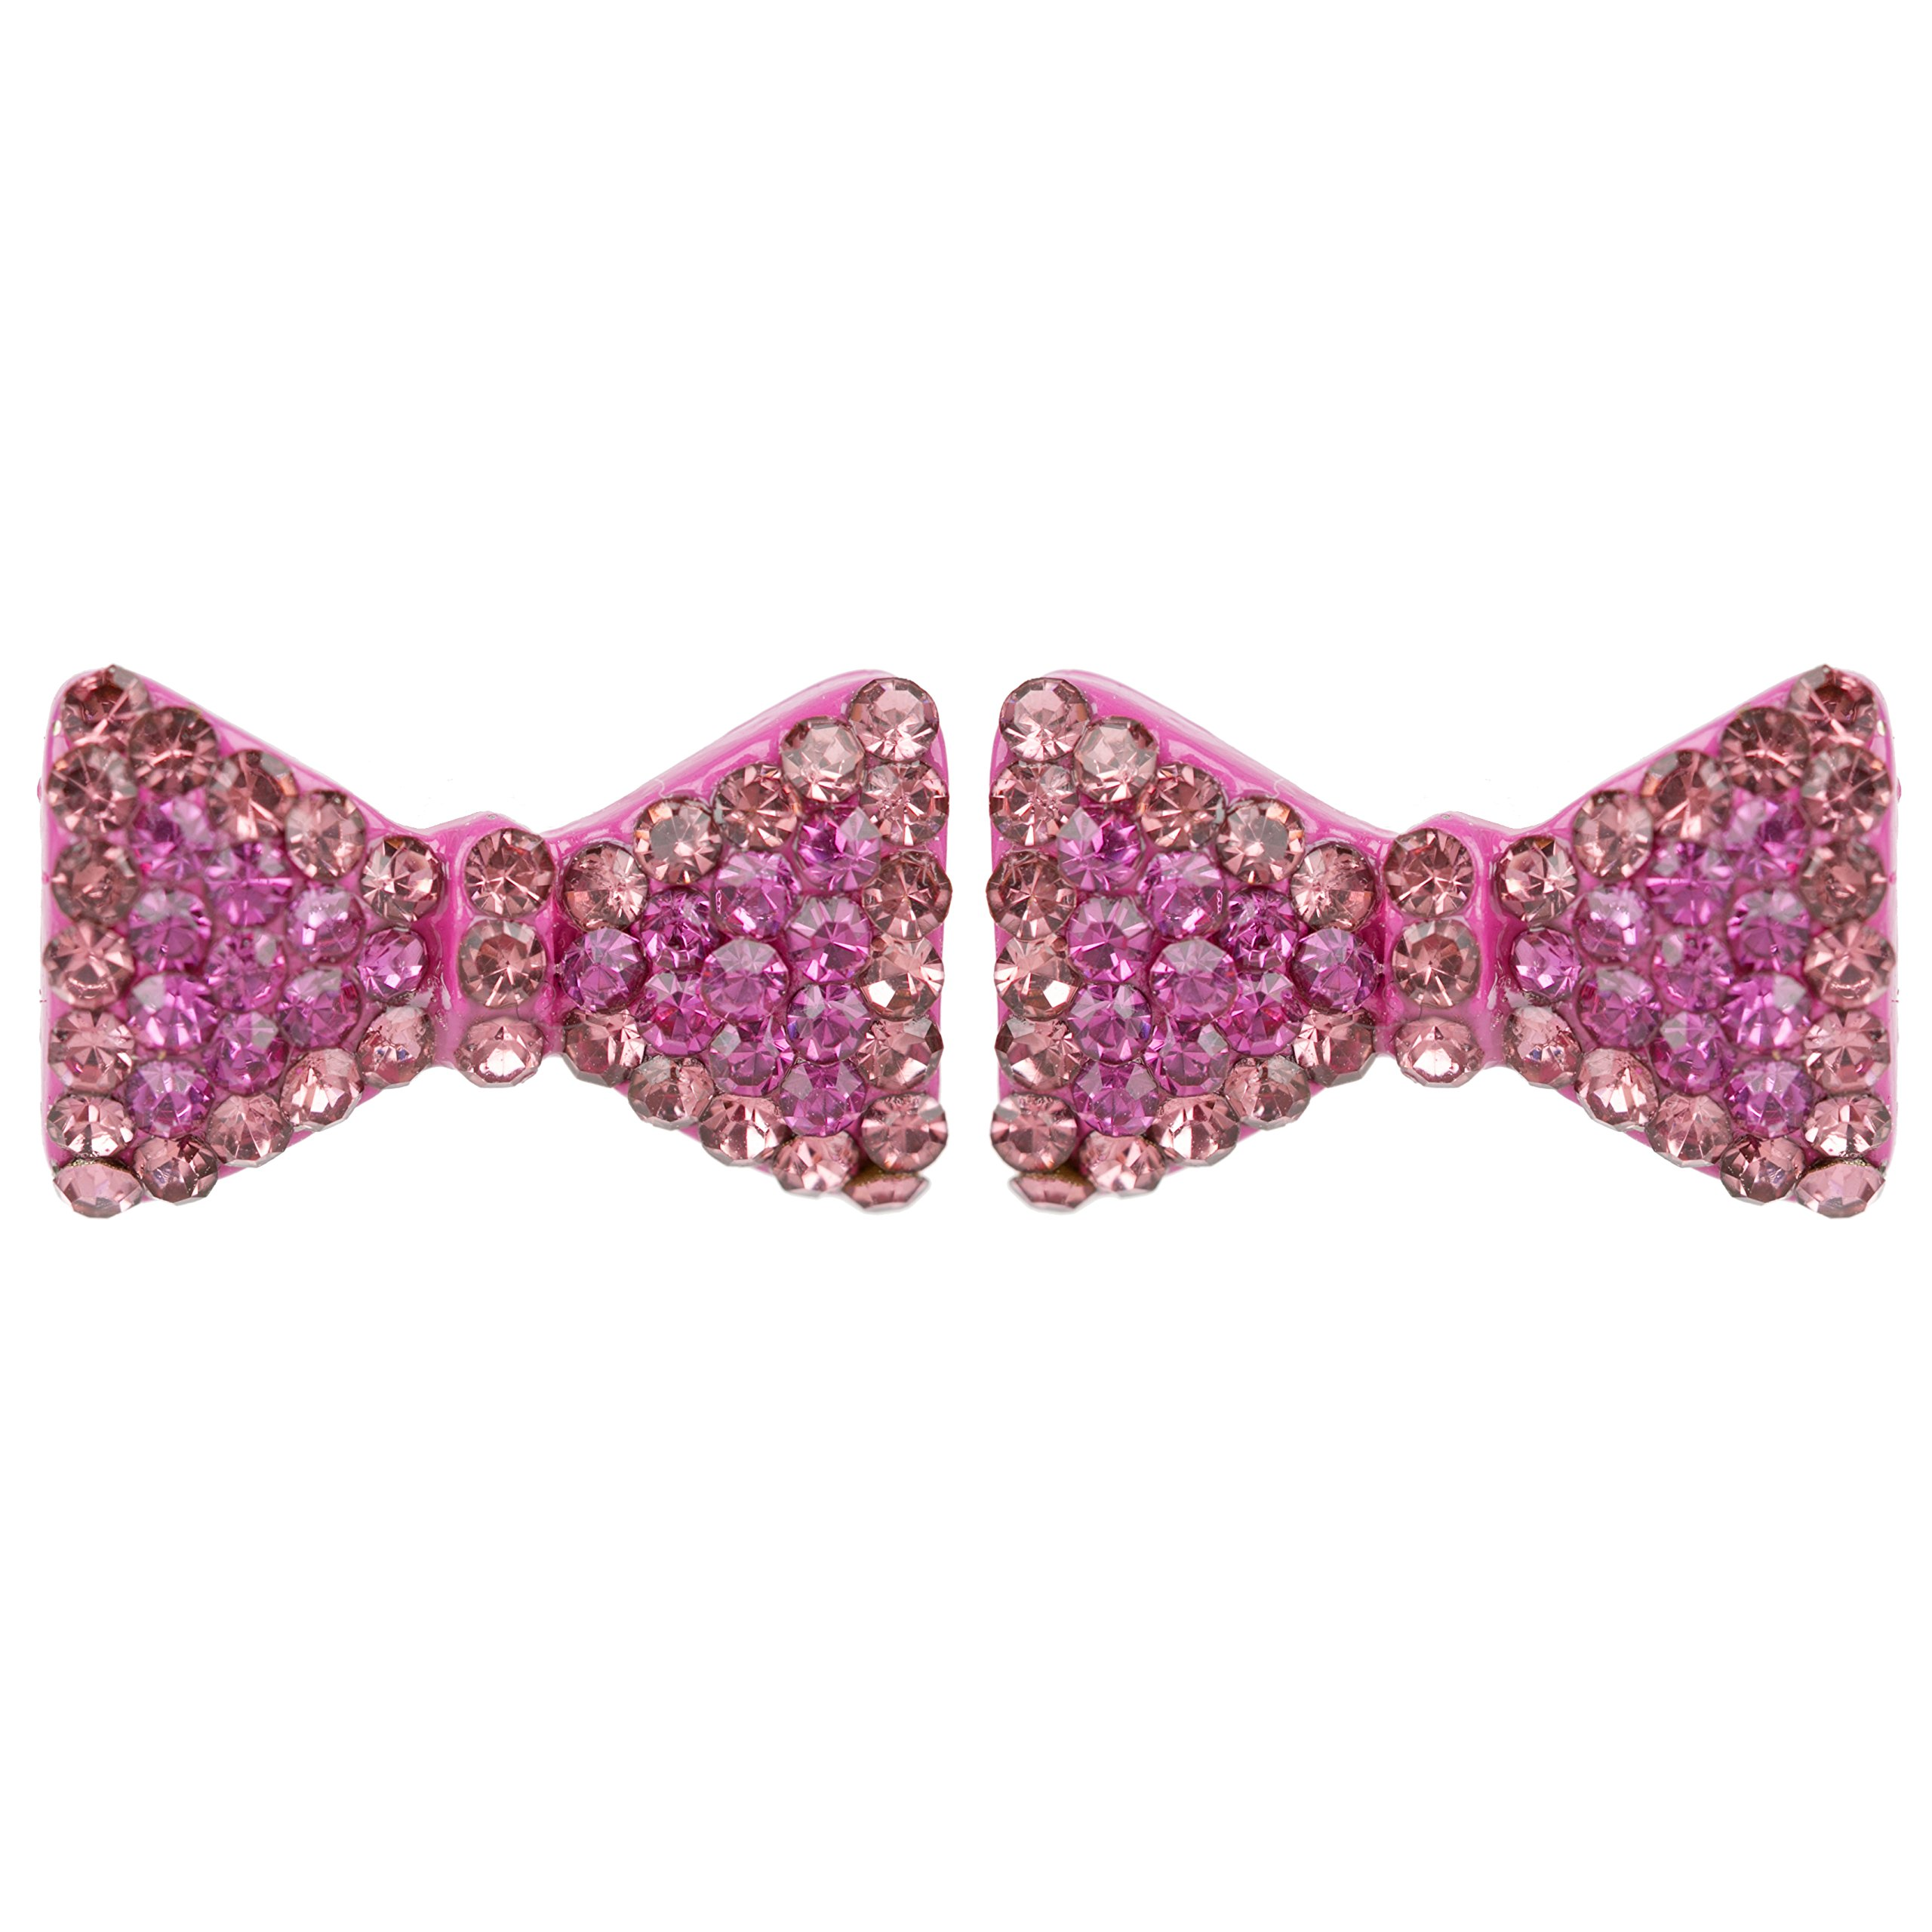 ACCESSORIESFOREVER Cute Crystal Rhinestone Bow Tie Design Charm Stud Post Earrings E1196 Pink